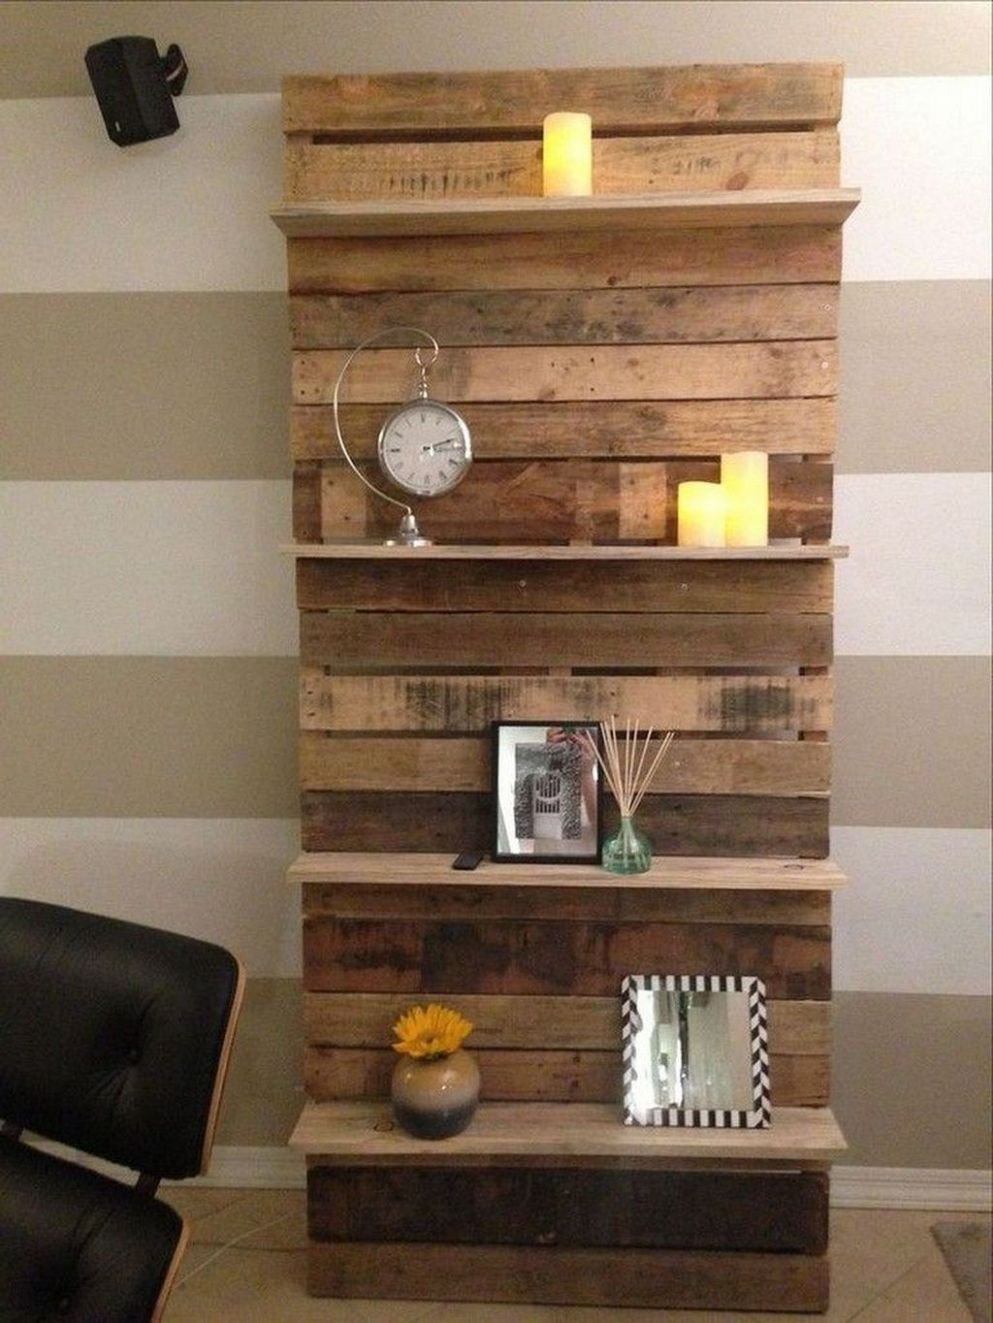 Pin by Tincup on Pallet ideas | Pallet home decor, Diy pallet ..